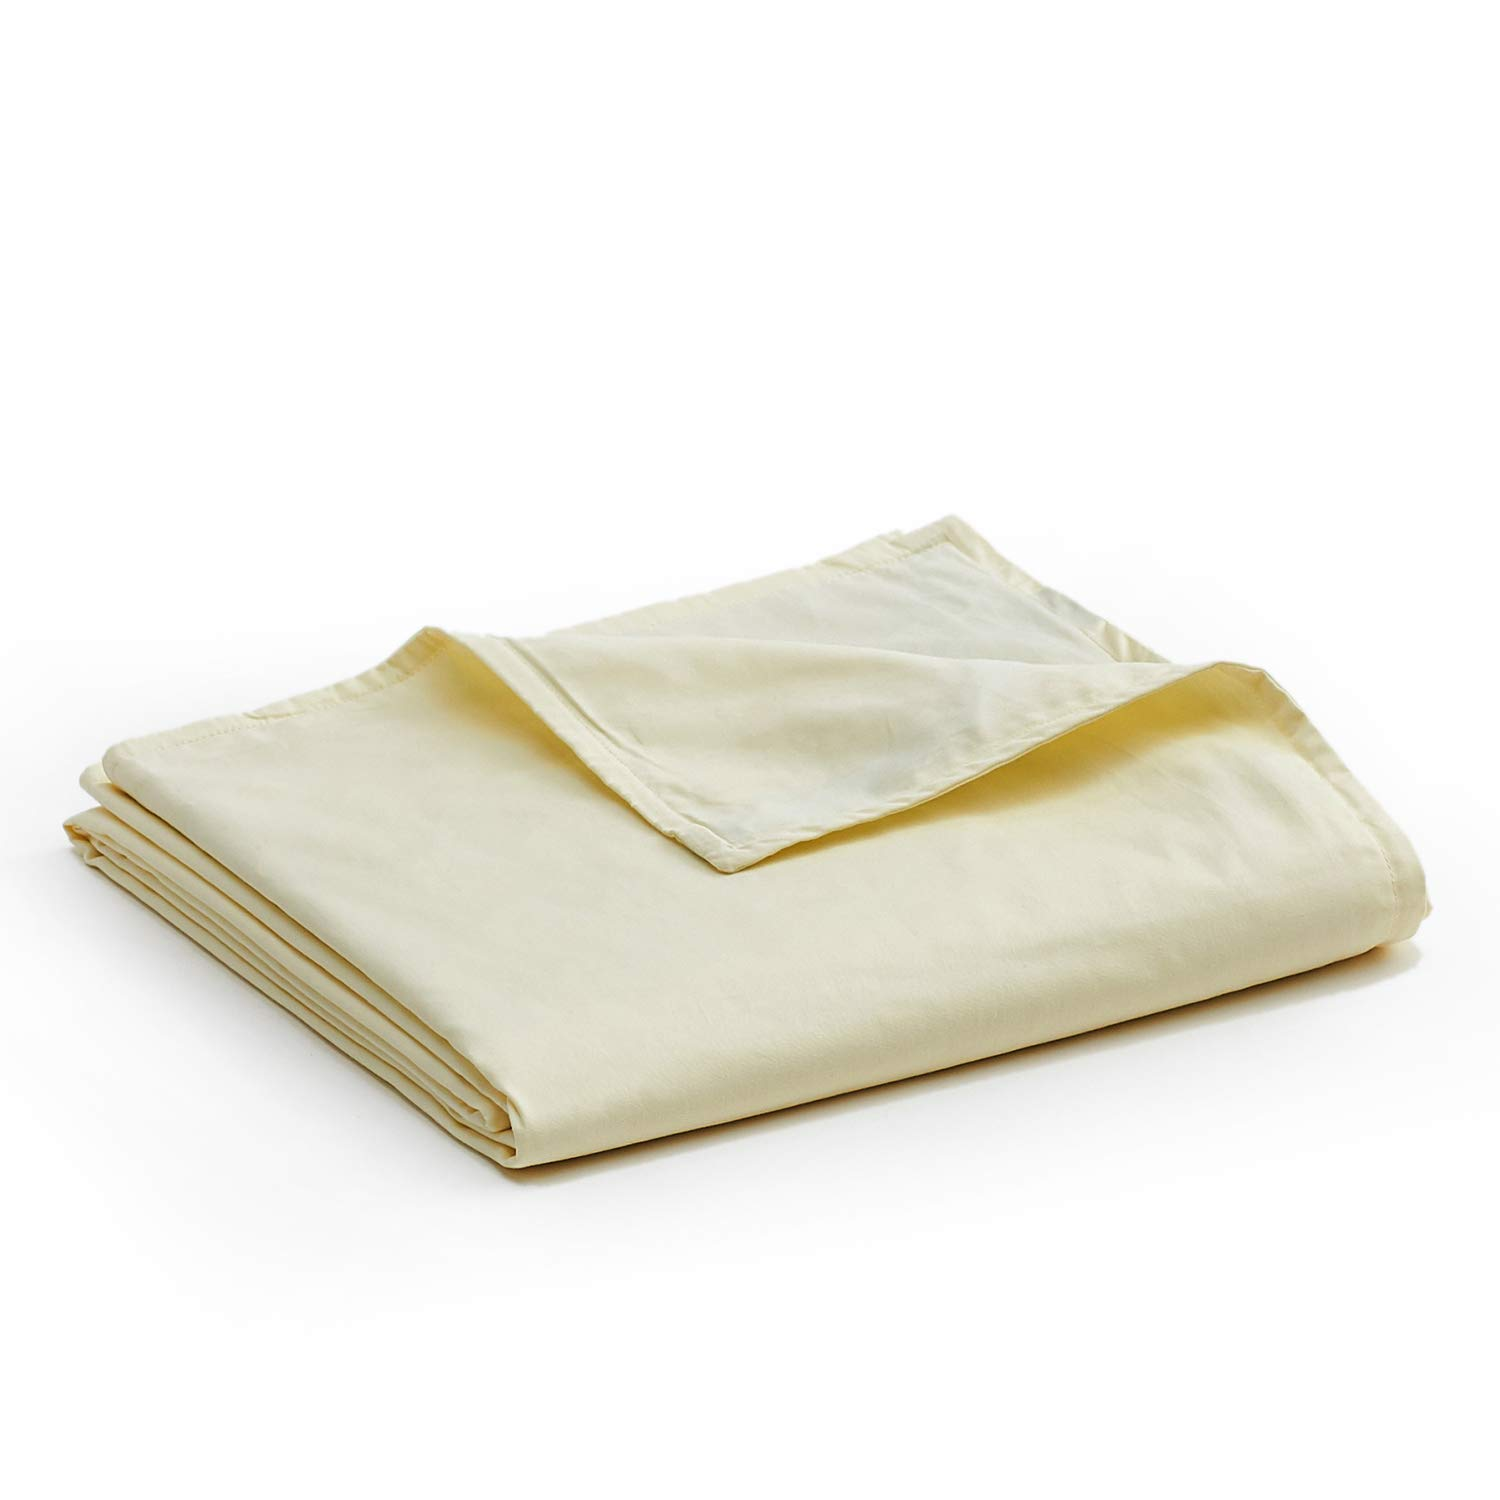 YnM Cotton Duvet Cover for Weighted Blankets (60''x80'') - Beige Print